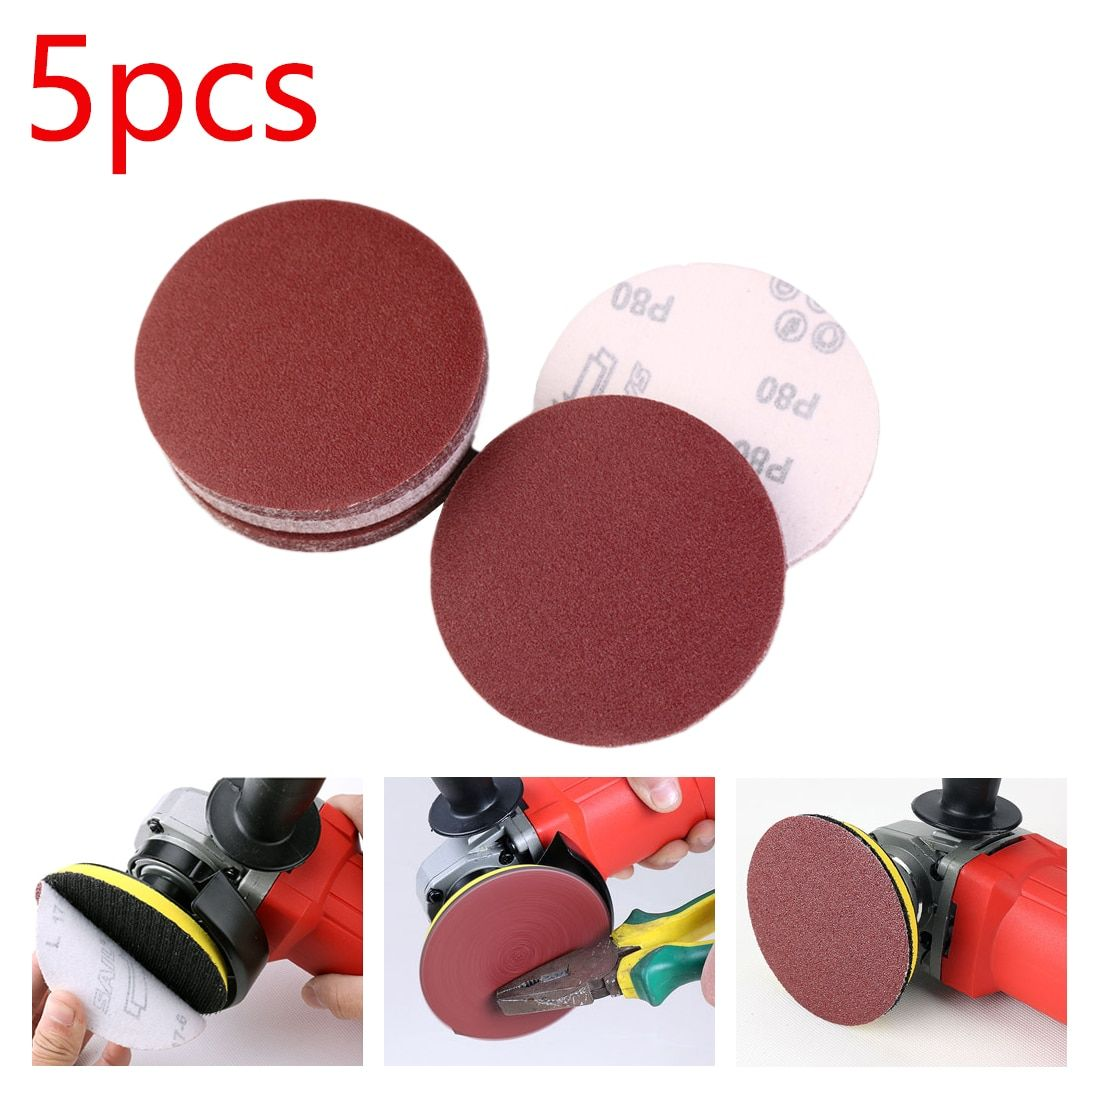 Low Price 5pcs 125 Mm Round Sandpaper Disk Sand Sheets Grit 80 1000 Hook Loop Sanding Disc For Sander Grits Red Polishing Discs P Hook Loop Sanding Sandpaper